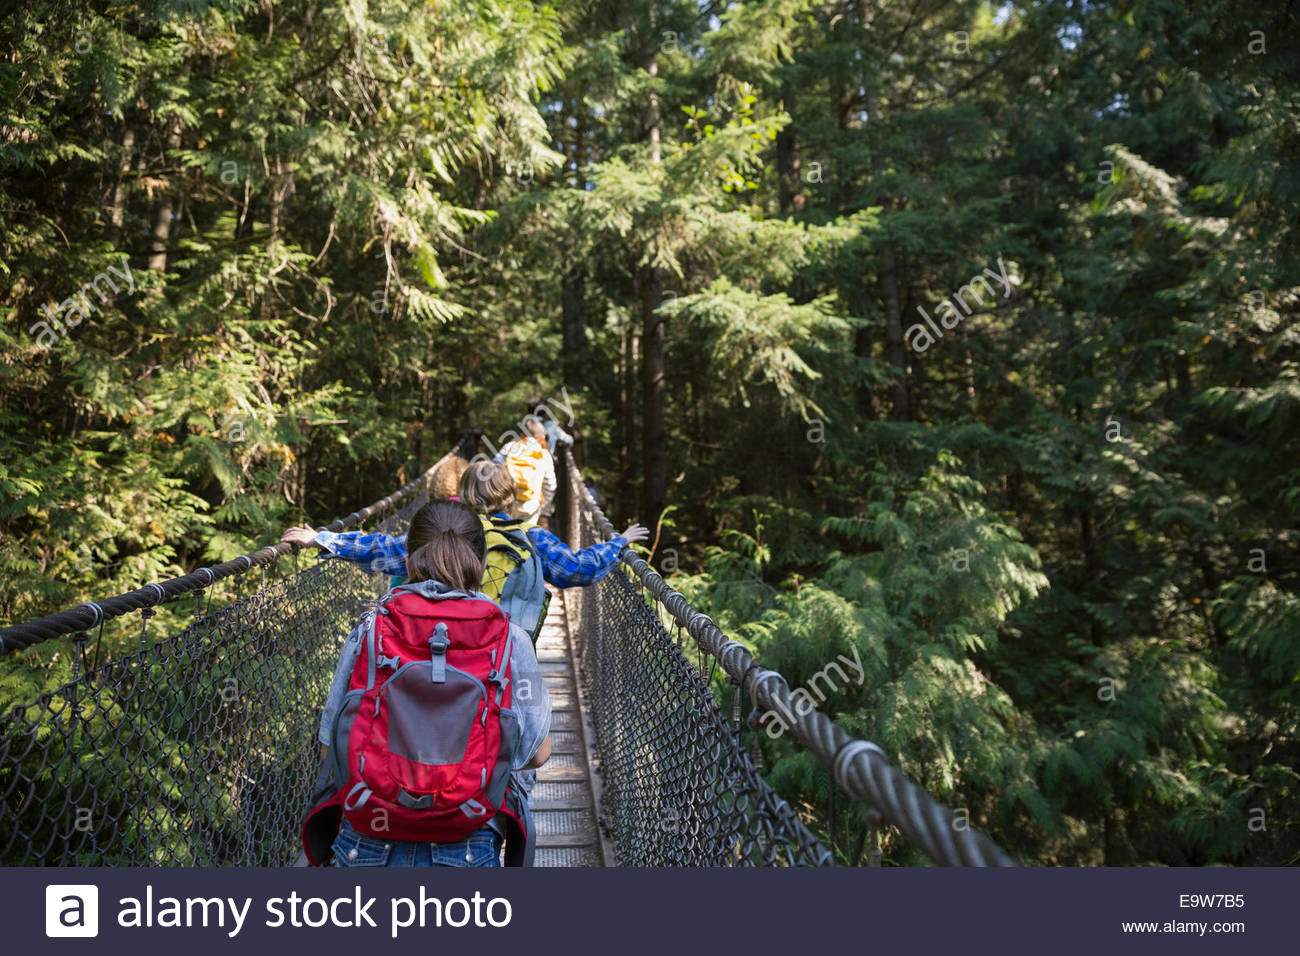 Children with backpacks crossing plank bridge in woods - Stock Image